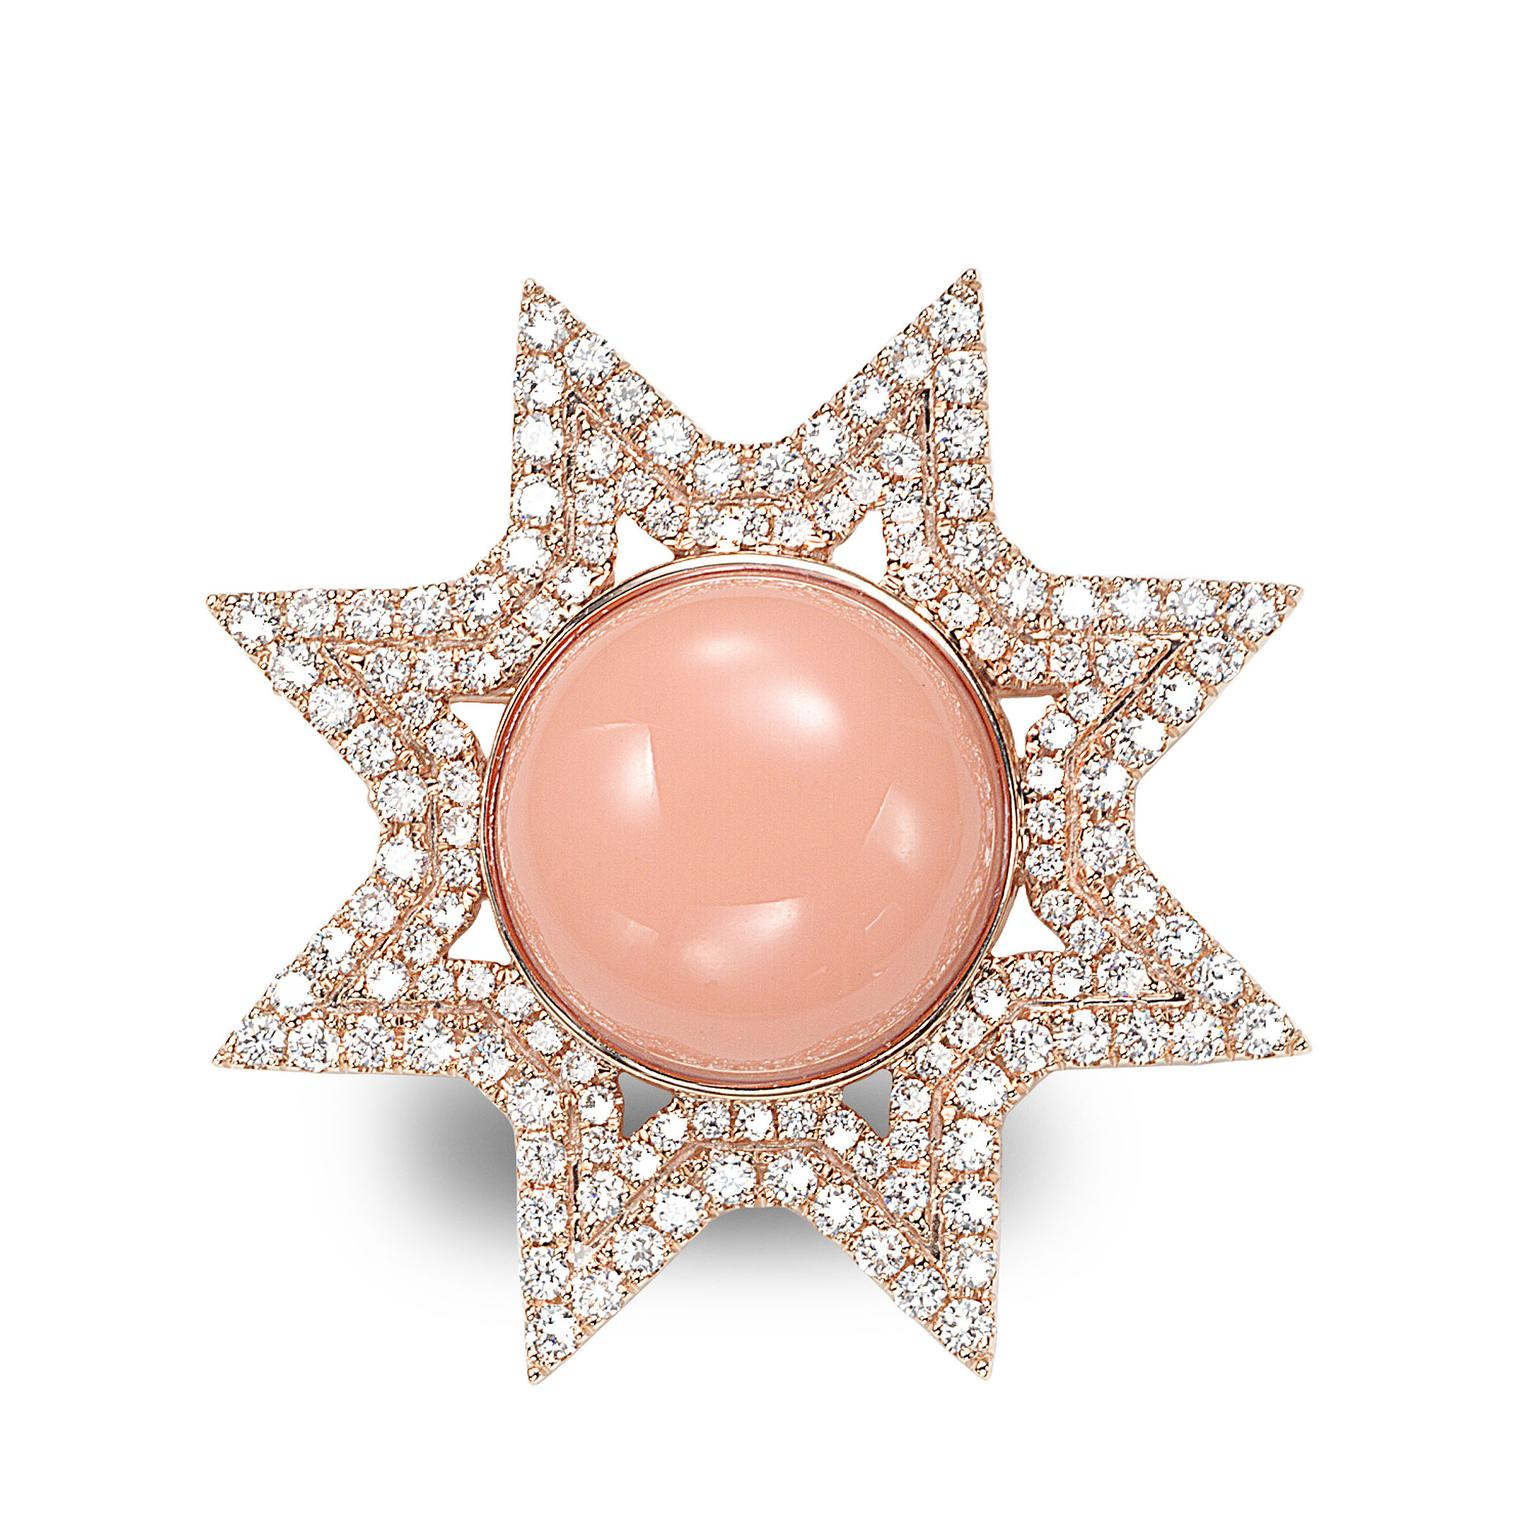 Octium Sun Collection rose gold Sun coral and diamond brooch